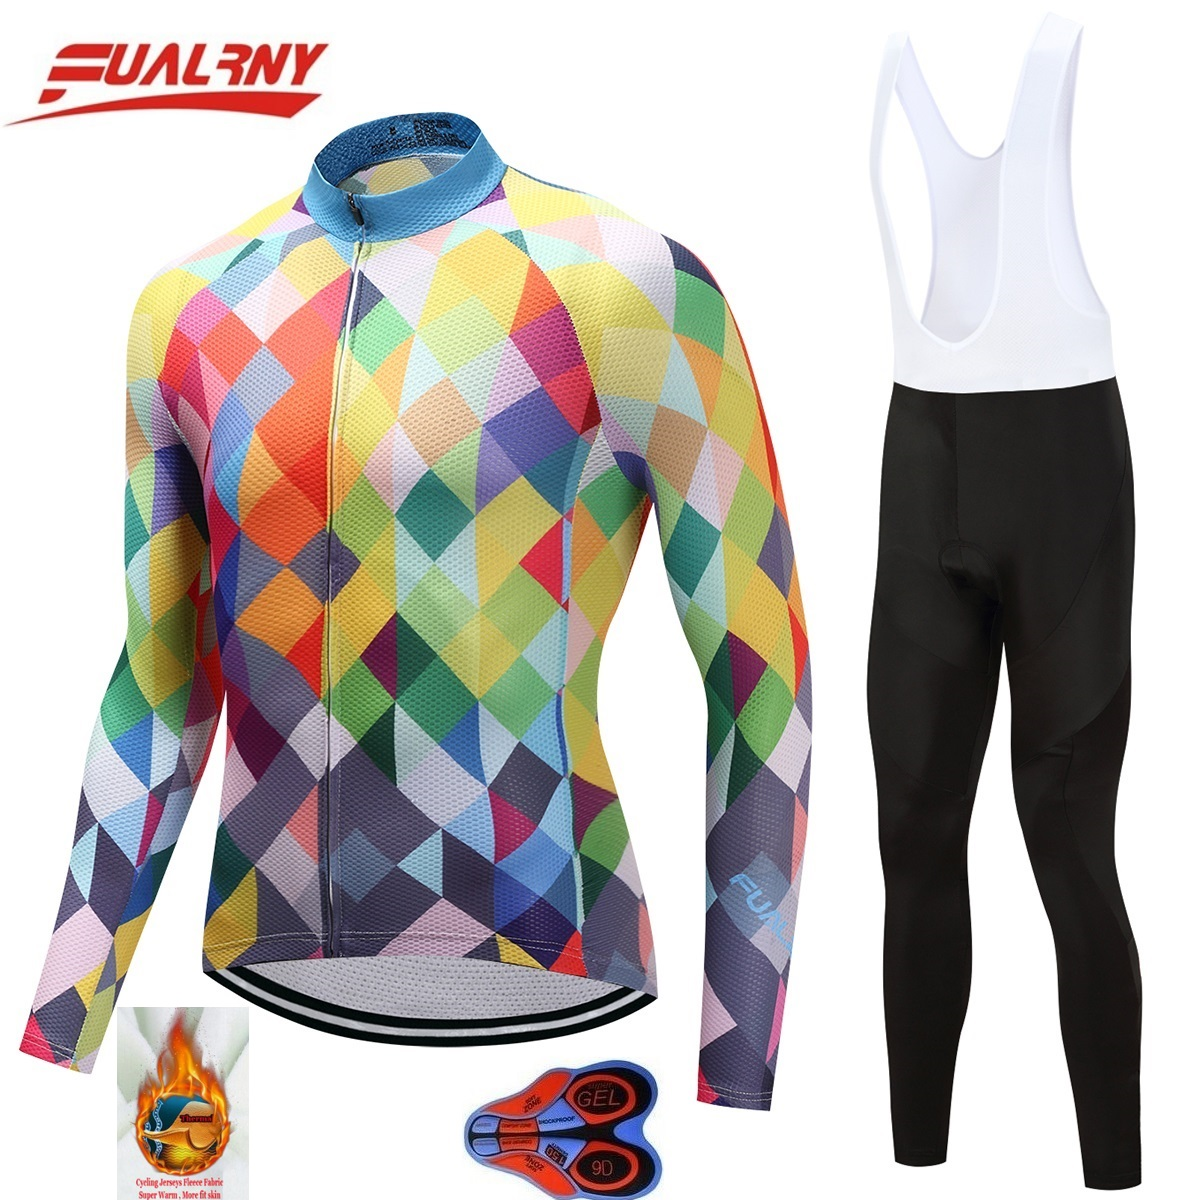 2018 Team FUALRNY Long sleeve Ropa Ciclismo Cycling Jersey sets 9D/winter Thermal Fleece Bicycle Clothing/MTB Clothes colourful2018 Team FUALRNY Long sleeve Ropa Ciclismo Cycling Jersey sets 9D/winter Thermal Fleece Bicycle Clothing/MTB Clothes colourful